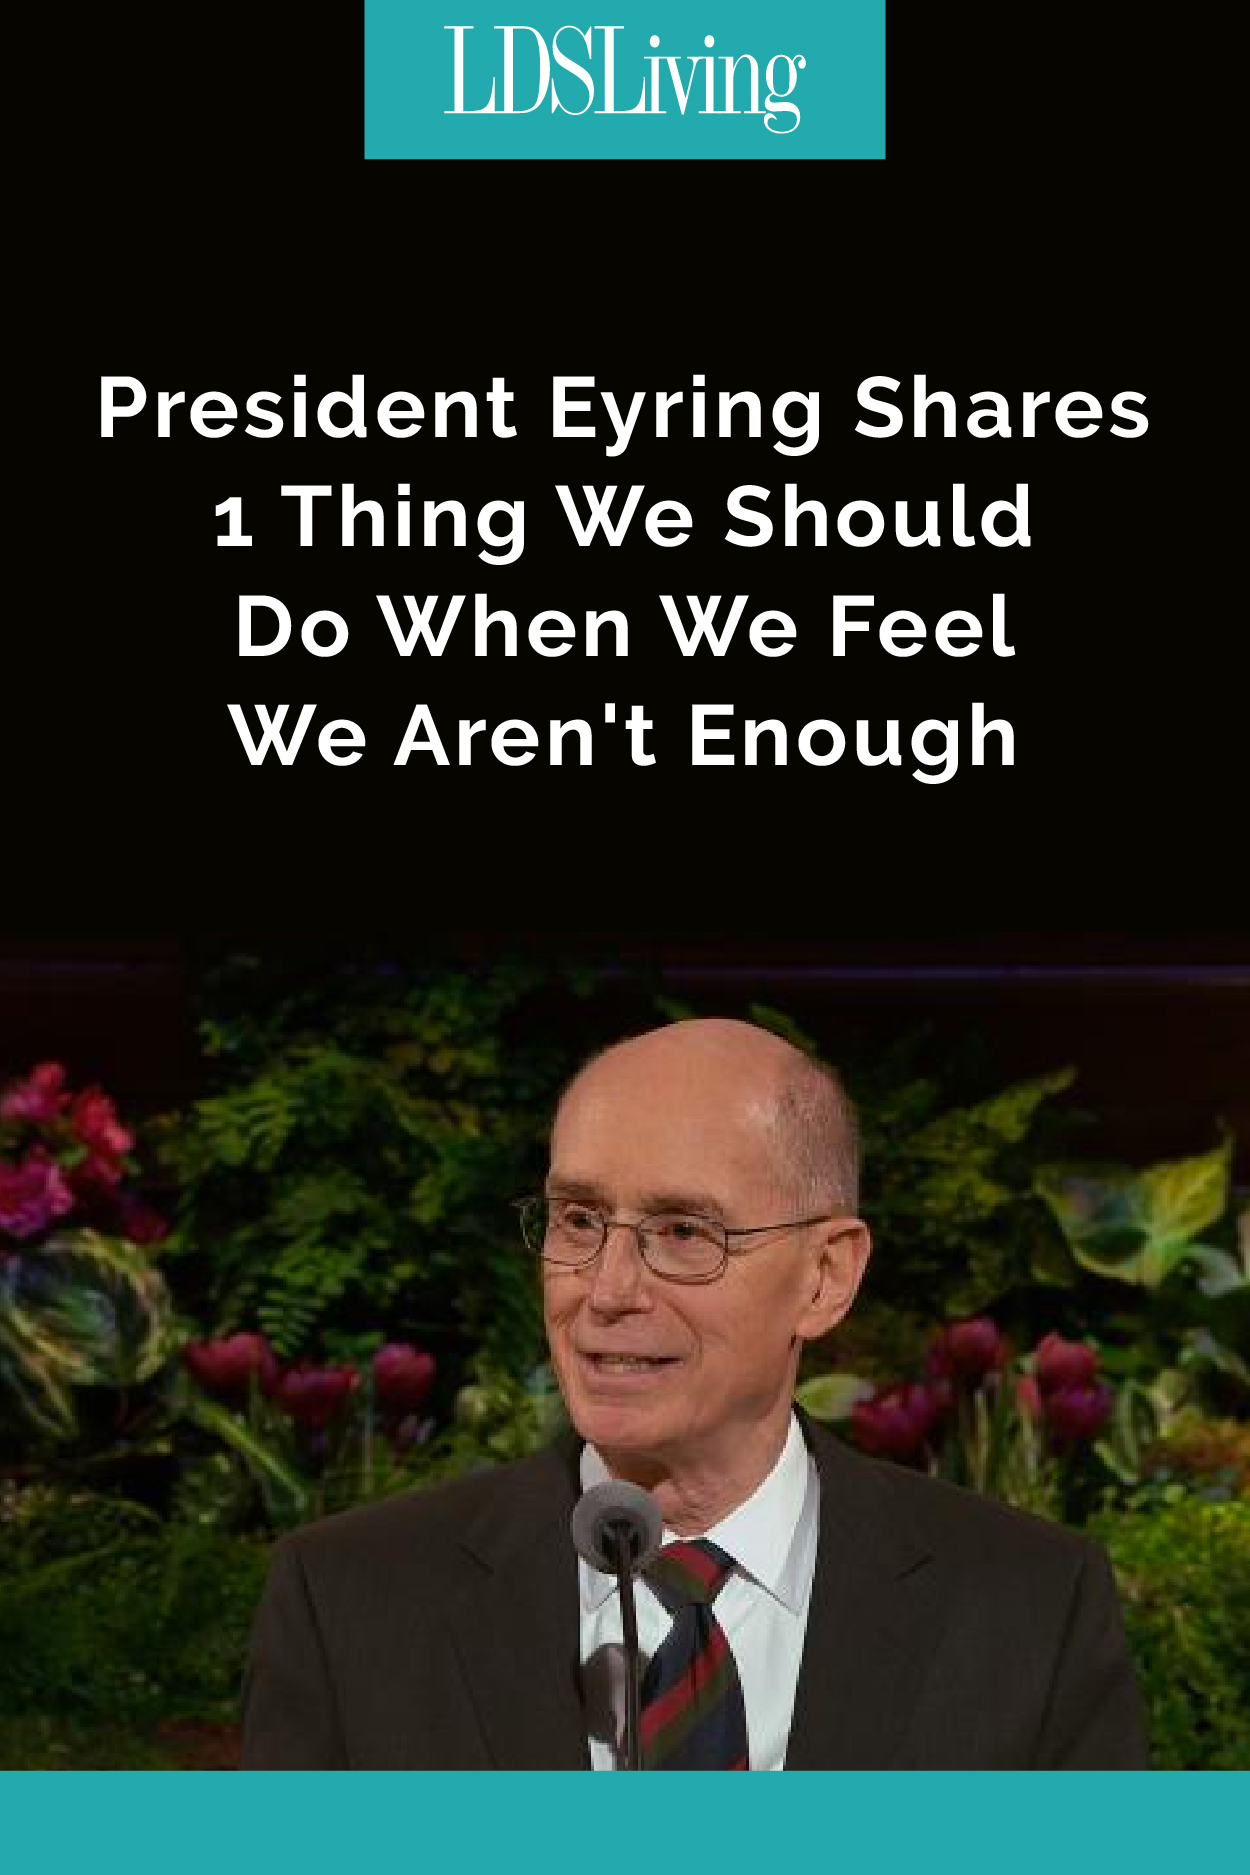 When you feel like insecurities are overwhelming you, President Eyring has the perfect, but sometimes overlooked, solution that will inspire confidence.